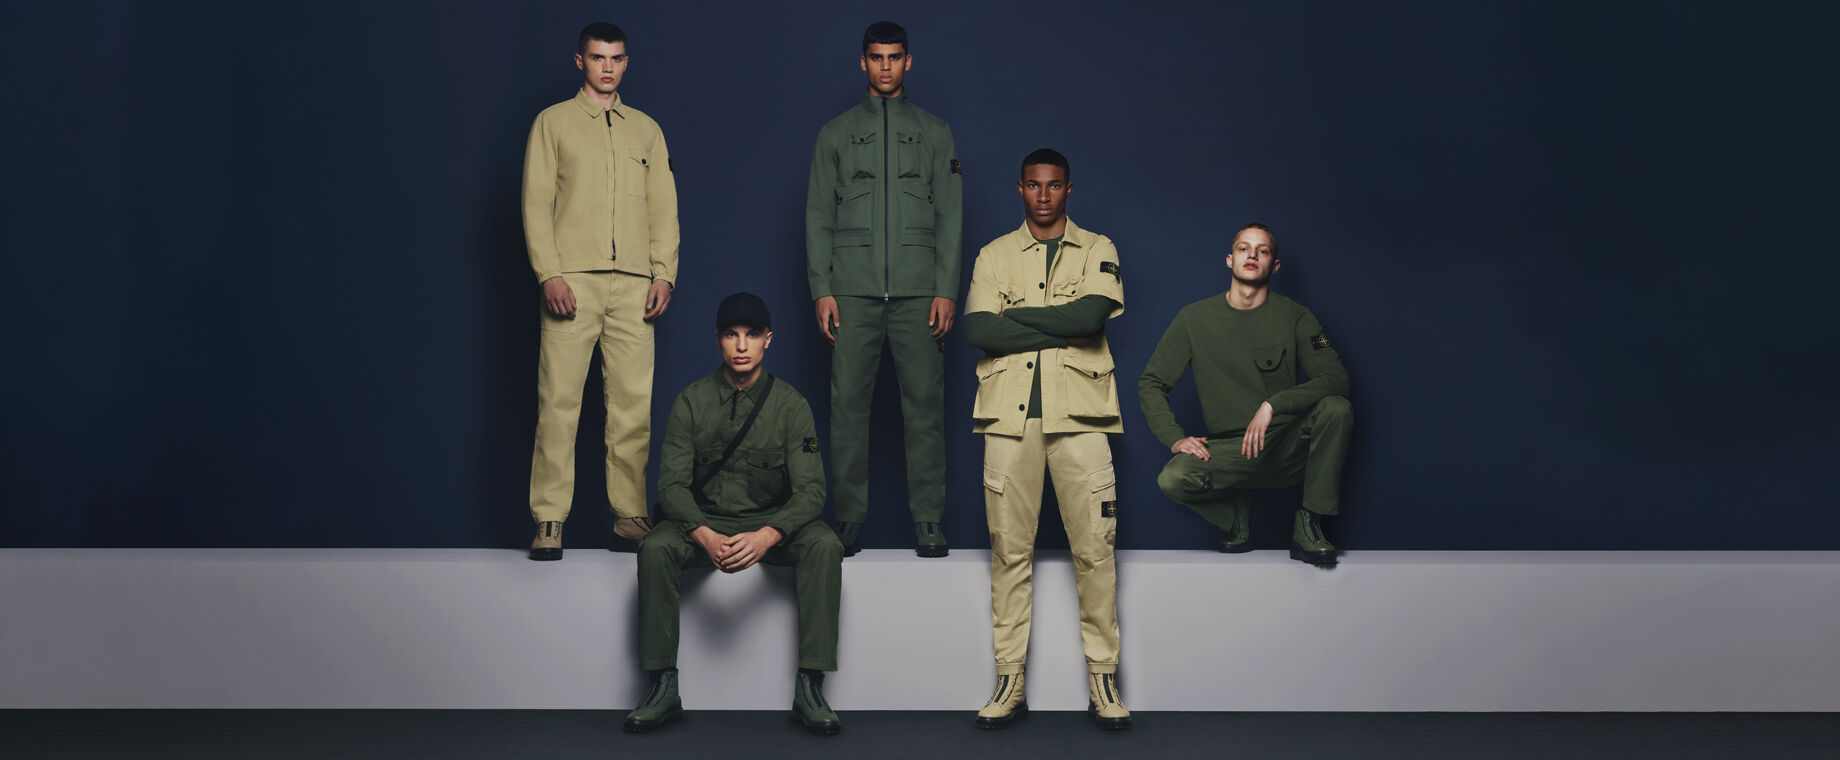 Nieuwe collectie Stone Island | Being There